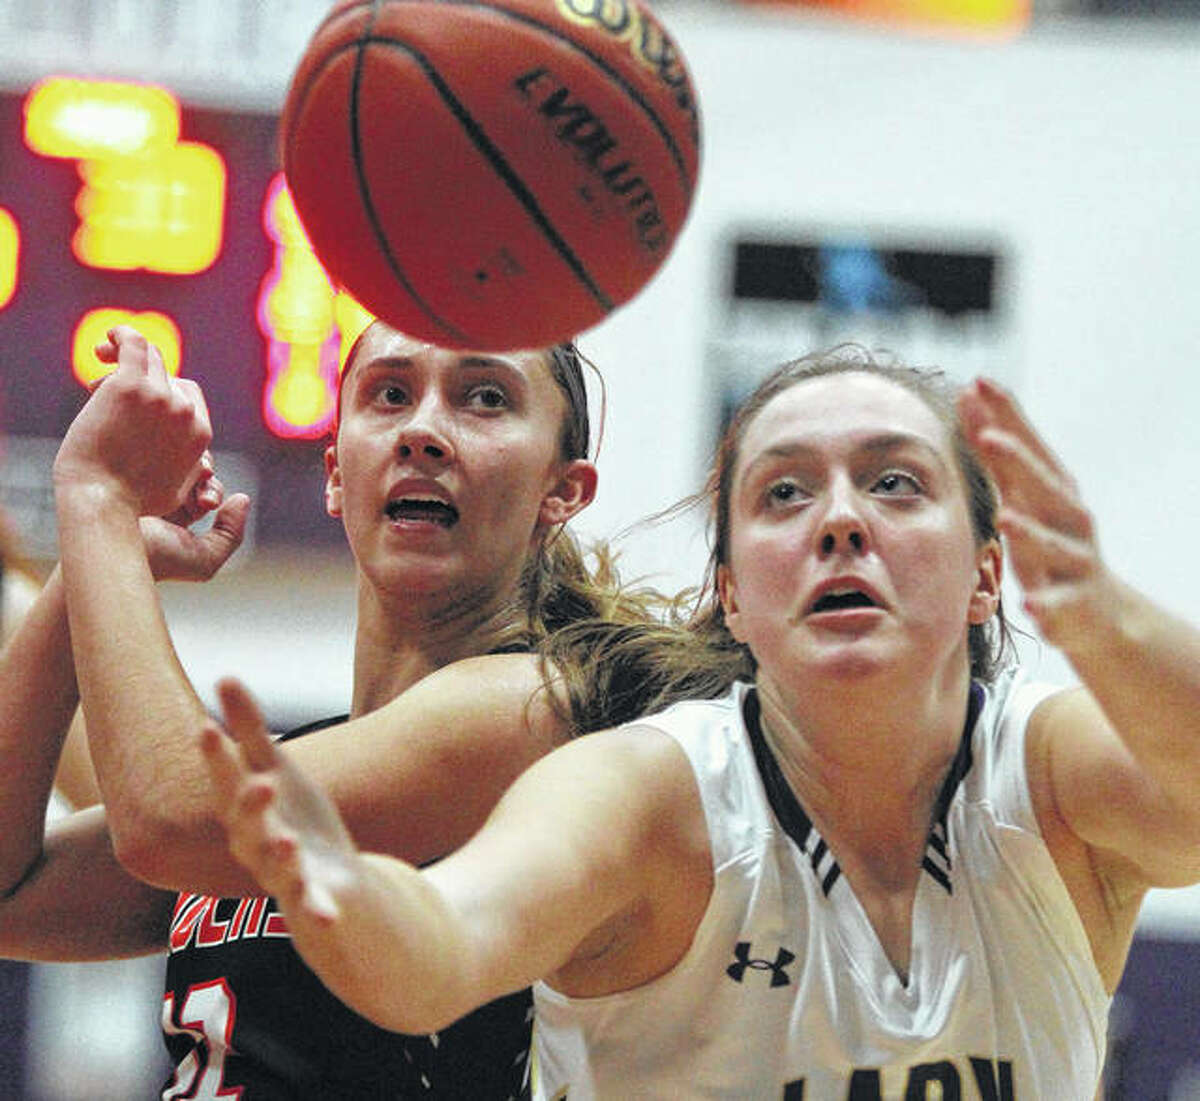 Jacksonville Routt's Bella McCartney (right) and Greenfield's Kassidy Walters go after a rebound during a WIVC girls basketball game Monday night at the Routt Dome in Jacksonville. Routt won despite 24 points from Walters.